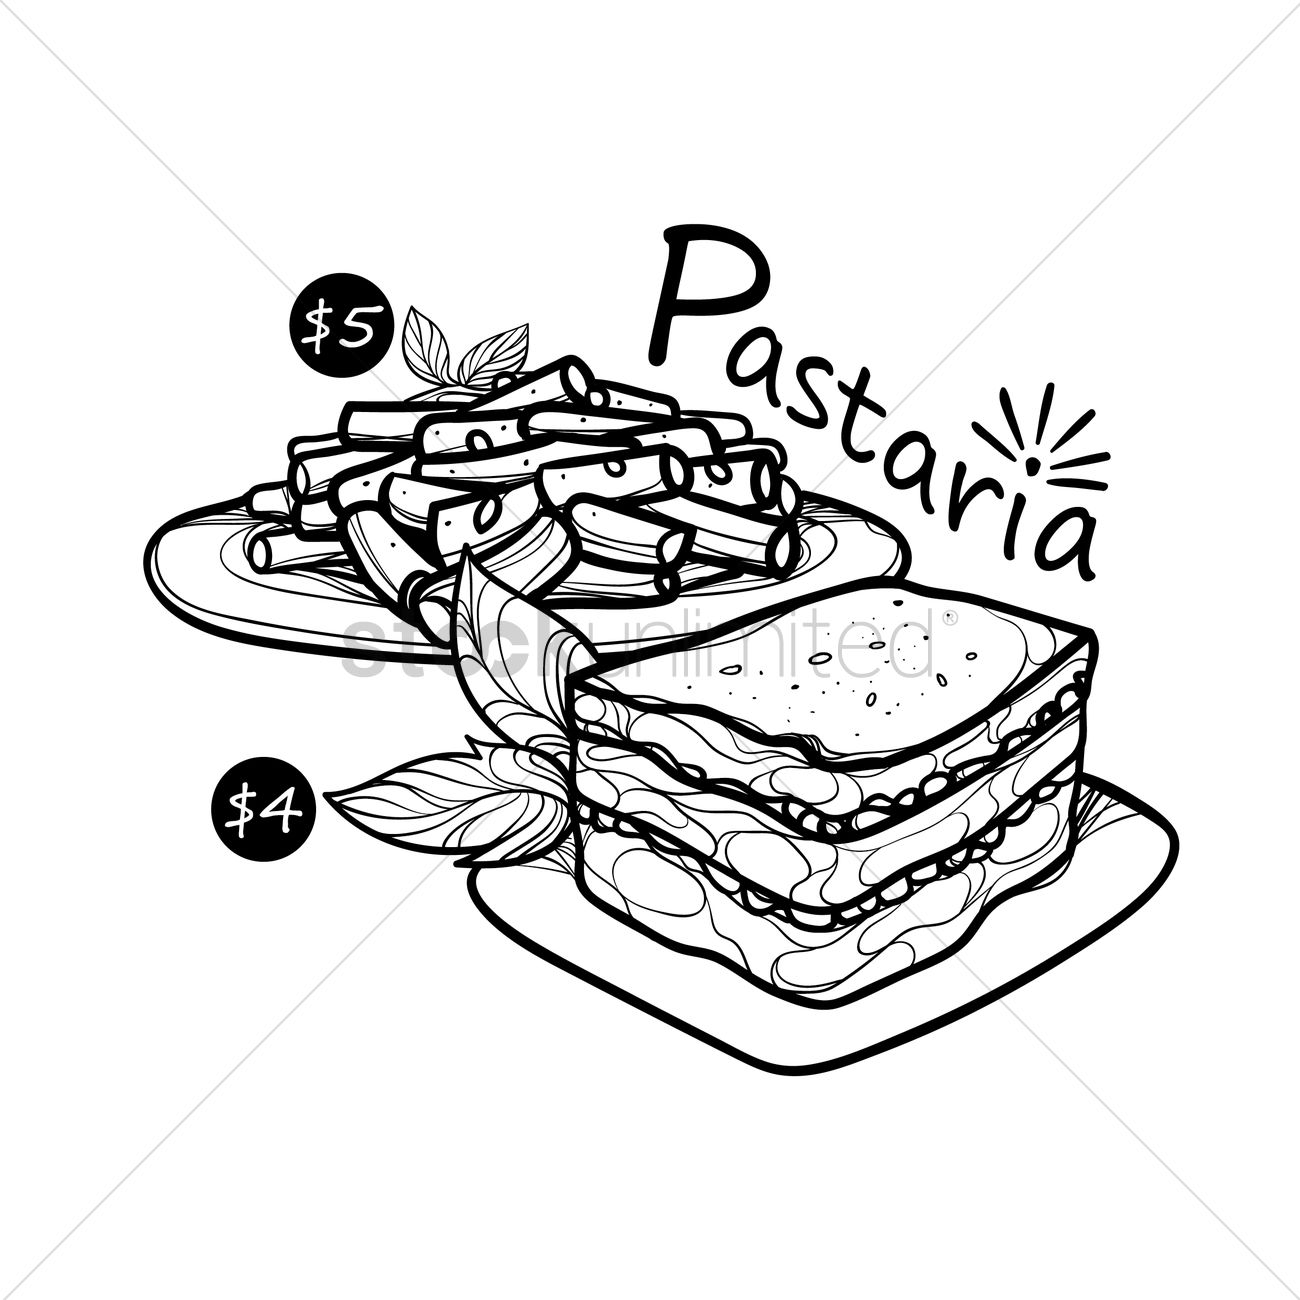 Pasta Drawing At Getdrawings